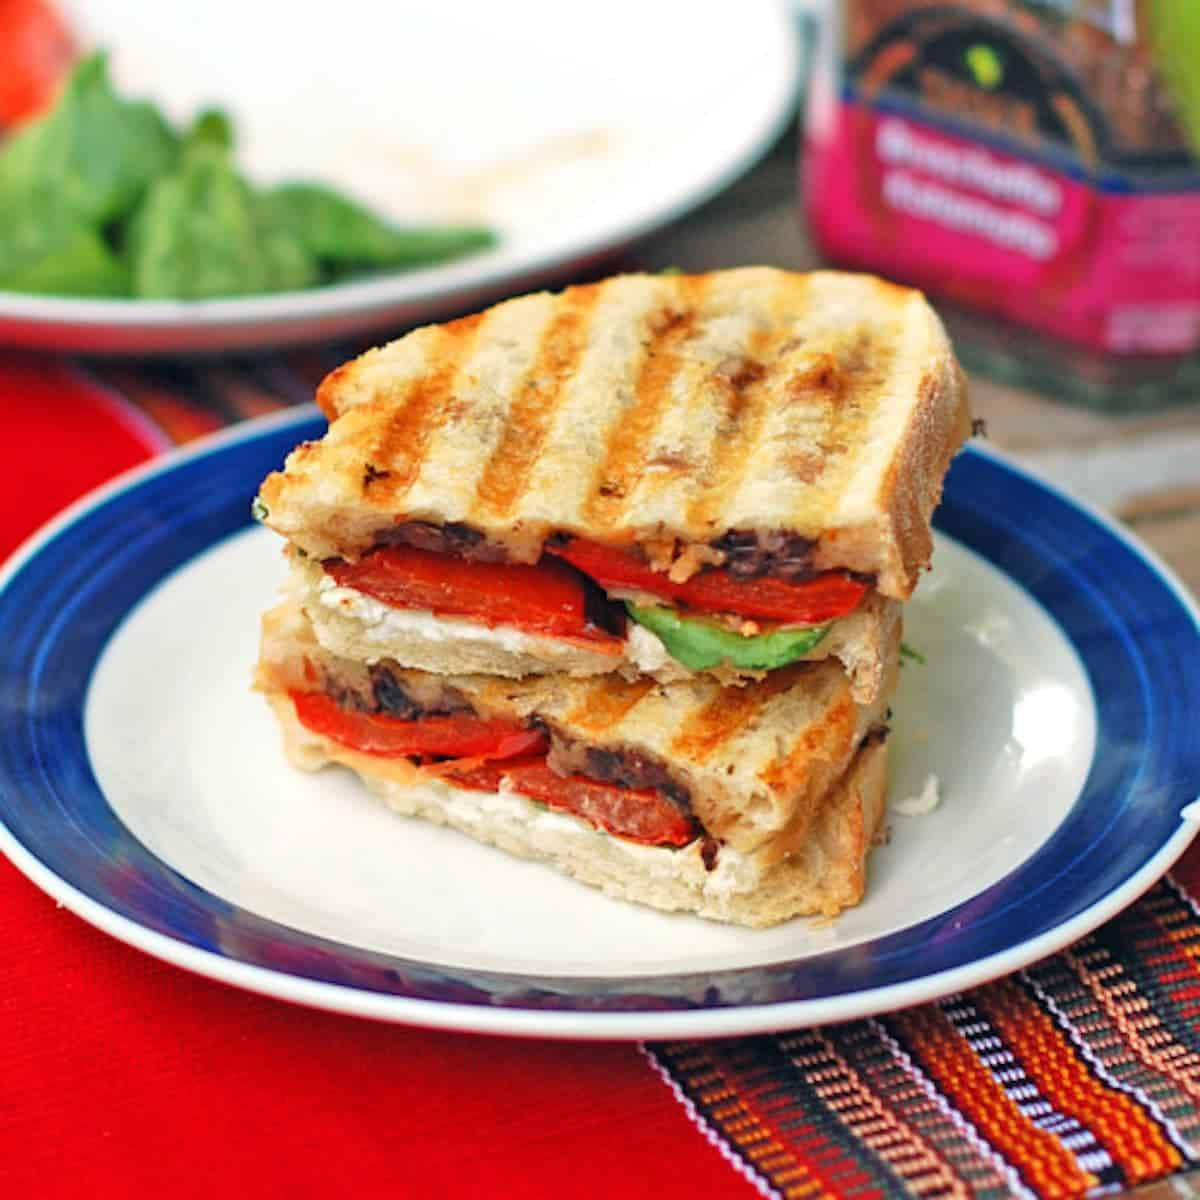 This red pepper and goat cheese panini has a layer of olive tapenade topped with roasted red pepper and soft, creamy goat cheese. Grilled perfection! | pinchofyum.com